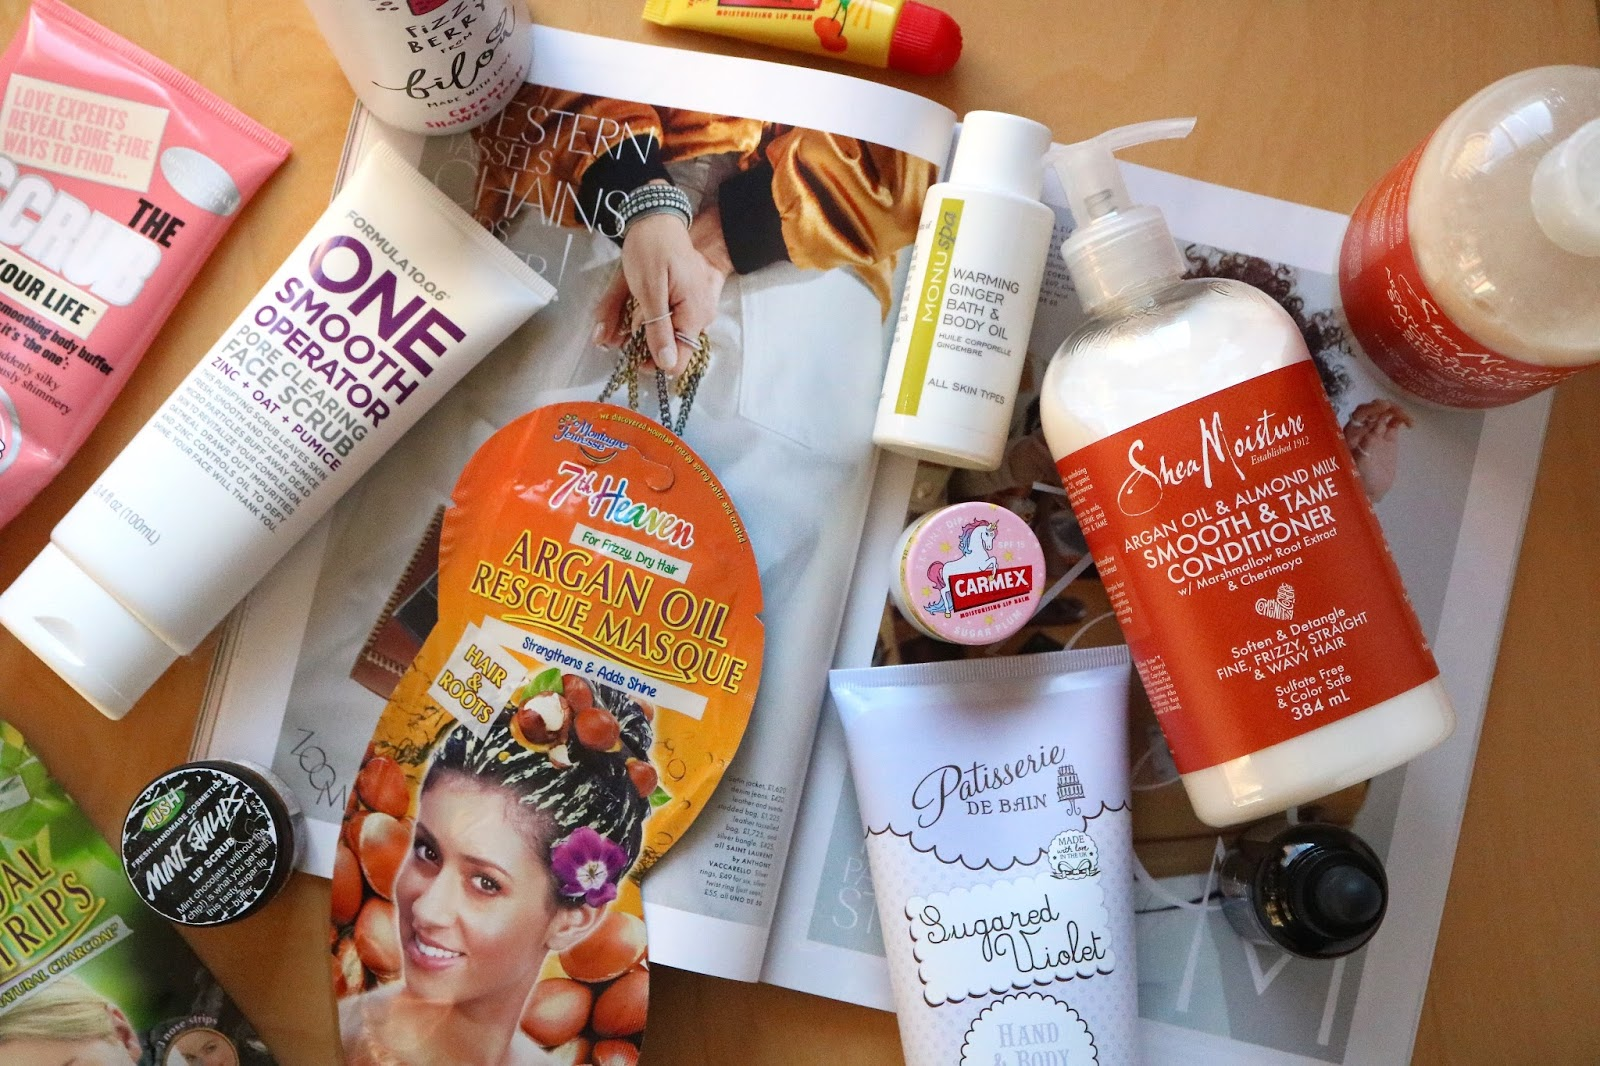 My Post-Travel Pamper products